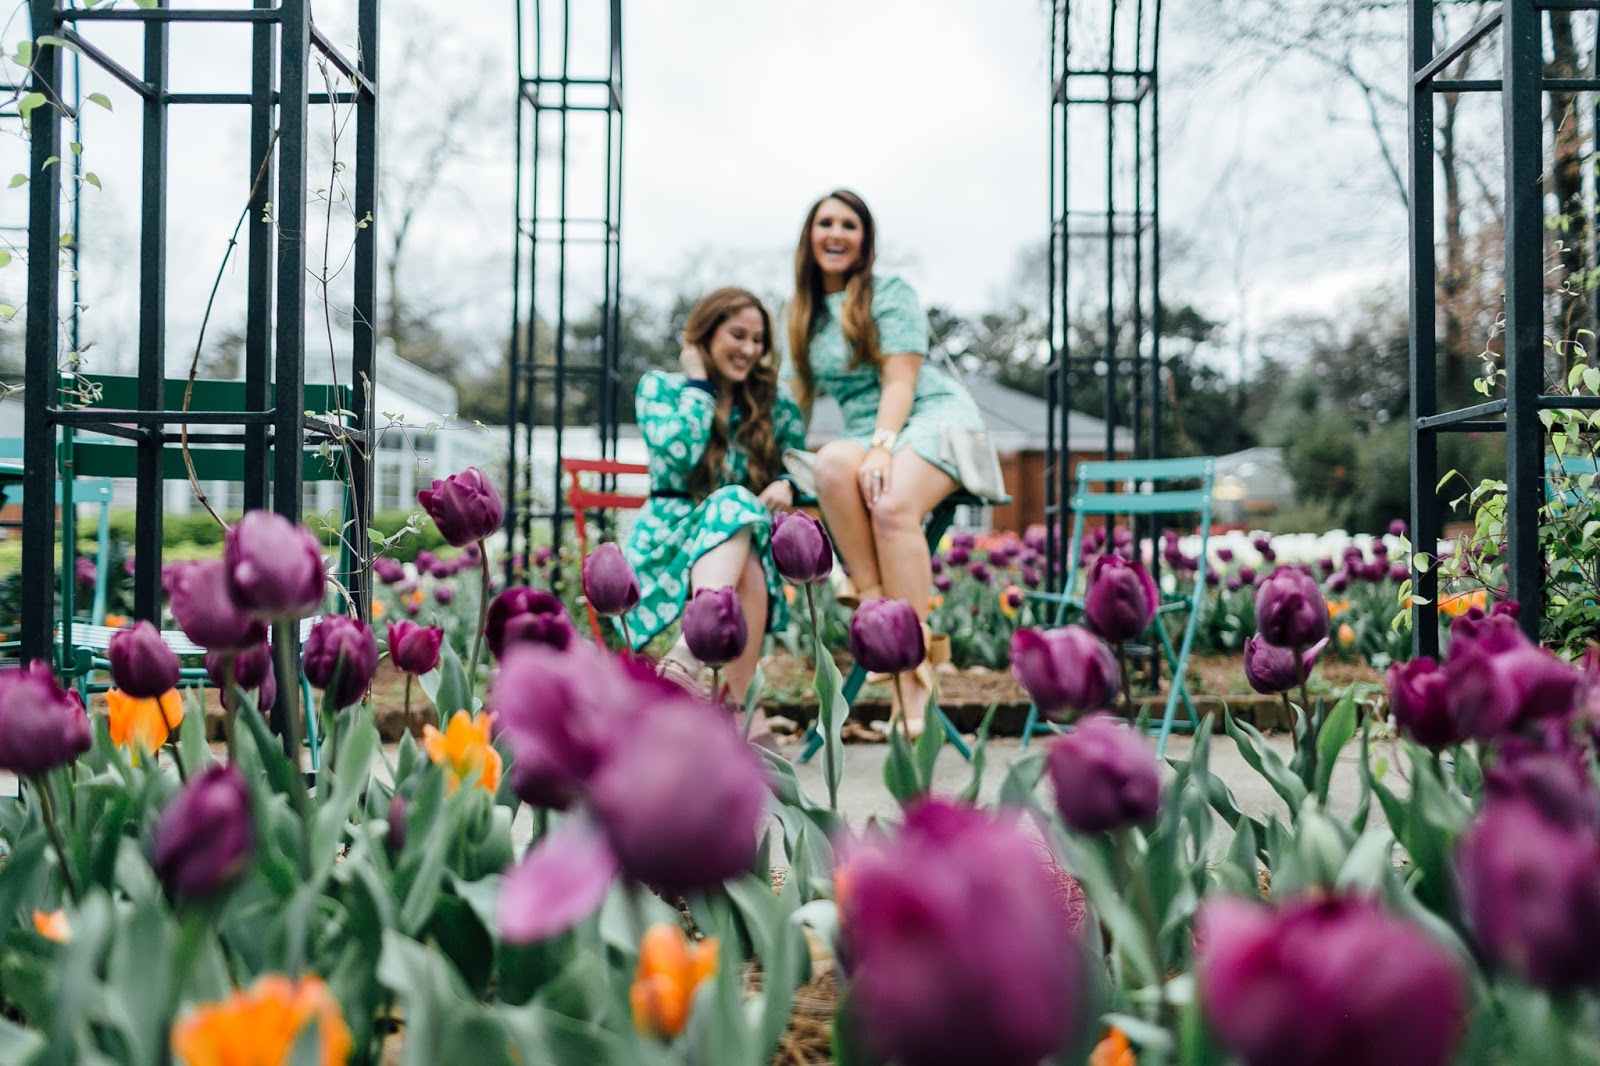 2 Pretty Easter Dresses for Women by fashion blogger Laura from Walking in Memphis in High Heels